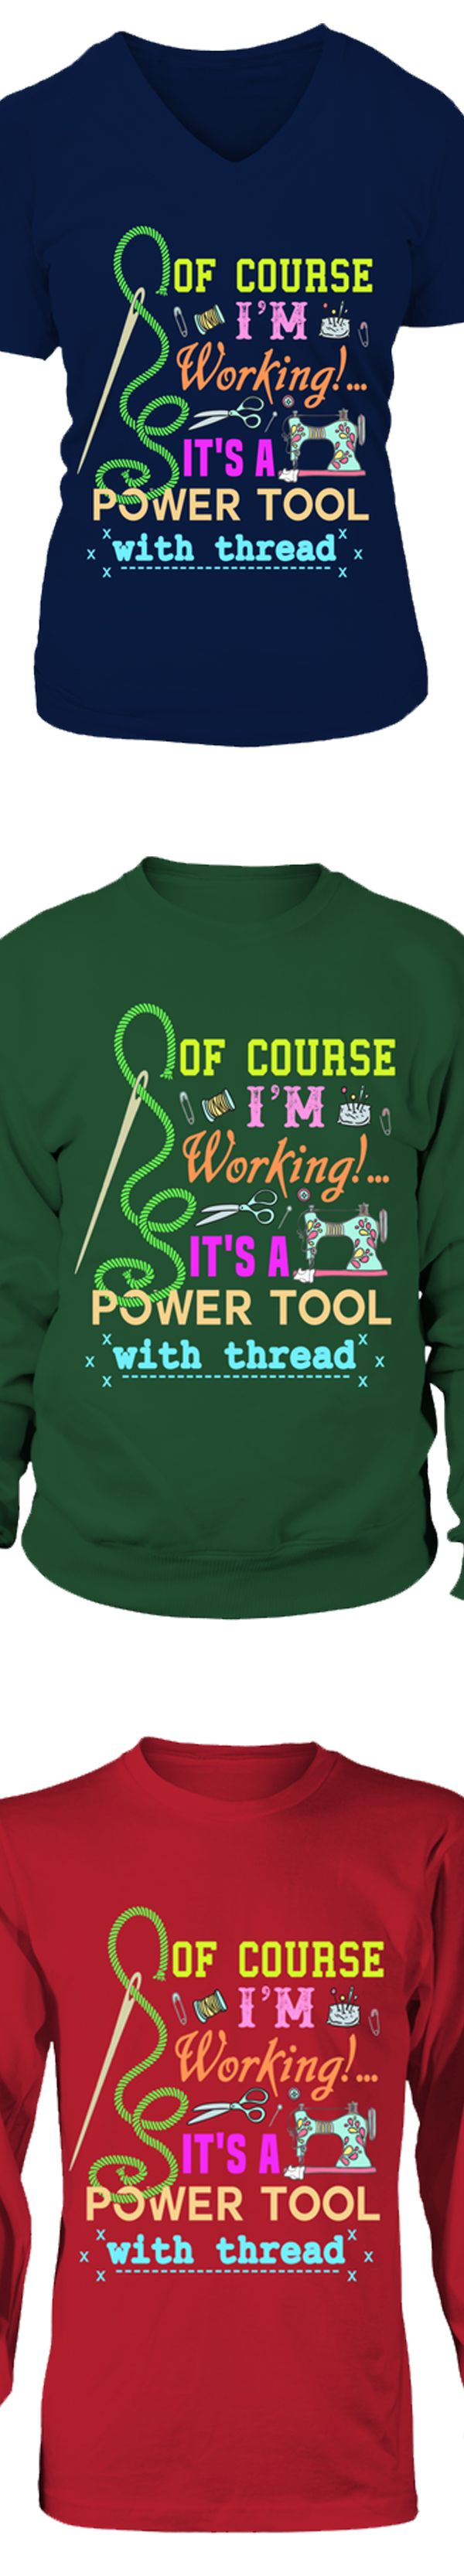 Shirt design course - Of Course I M Working It S A Power Tool With Thread